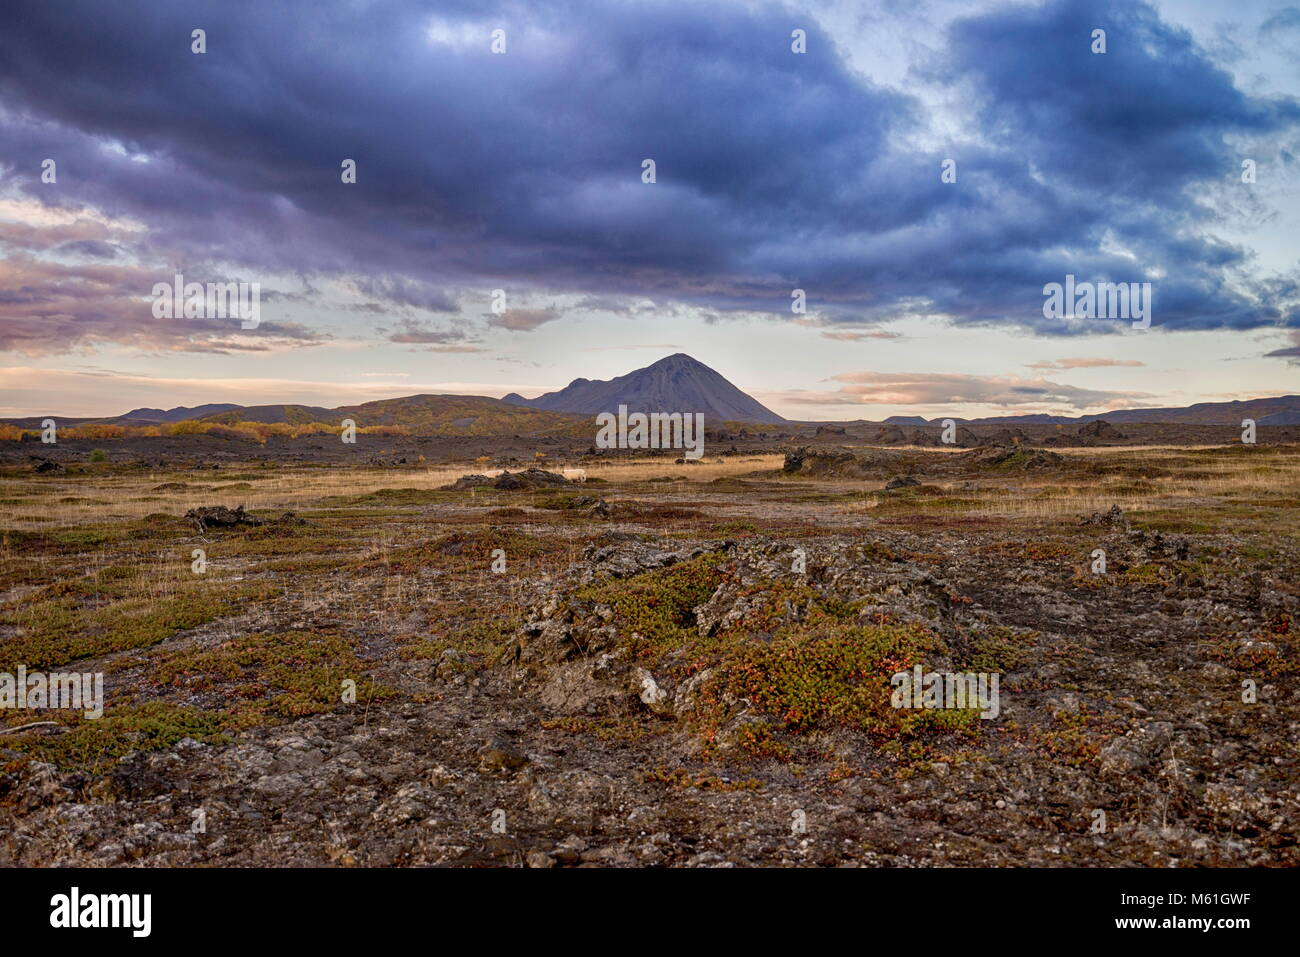 Dirt and high mountain road in Iceland - Stock Image